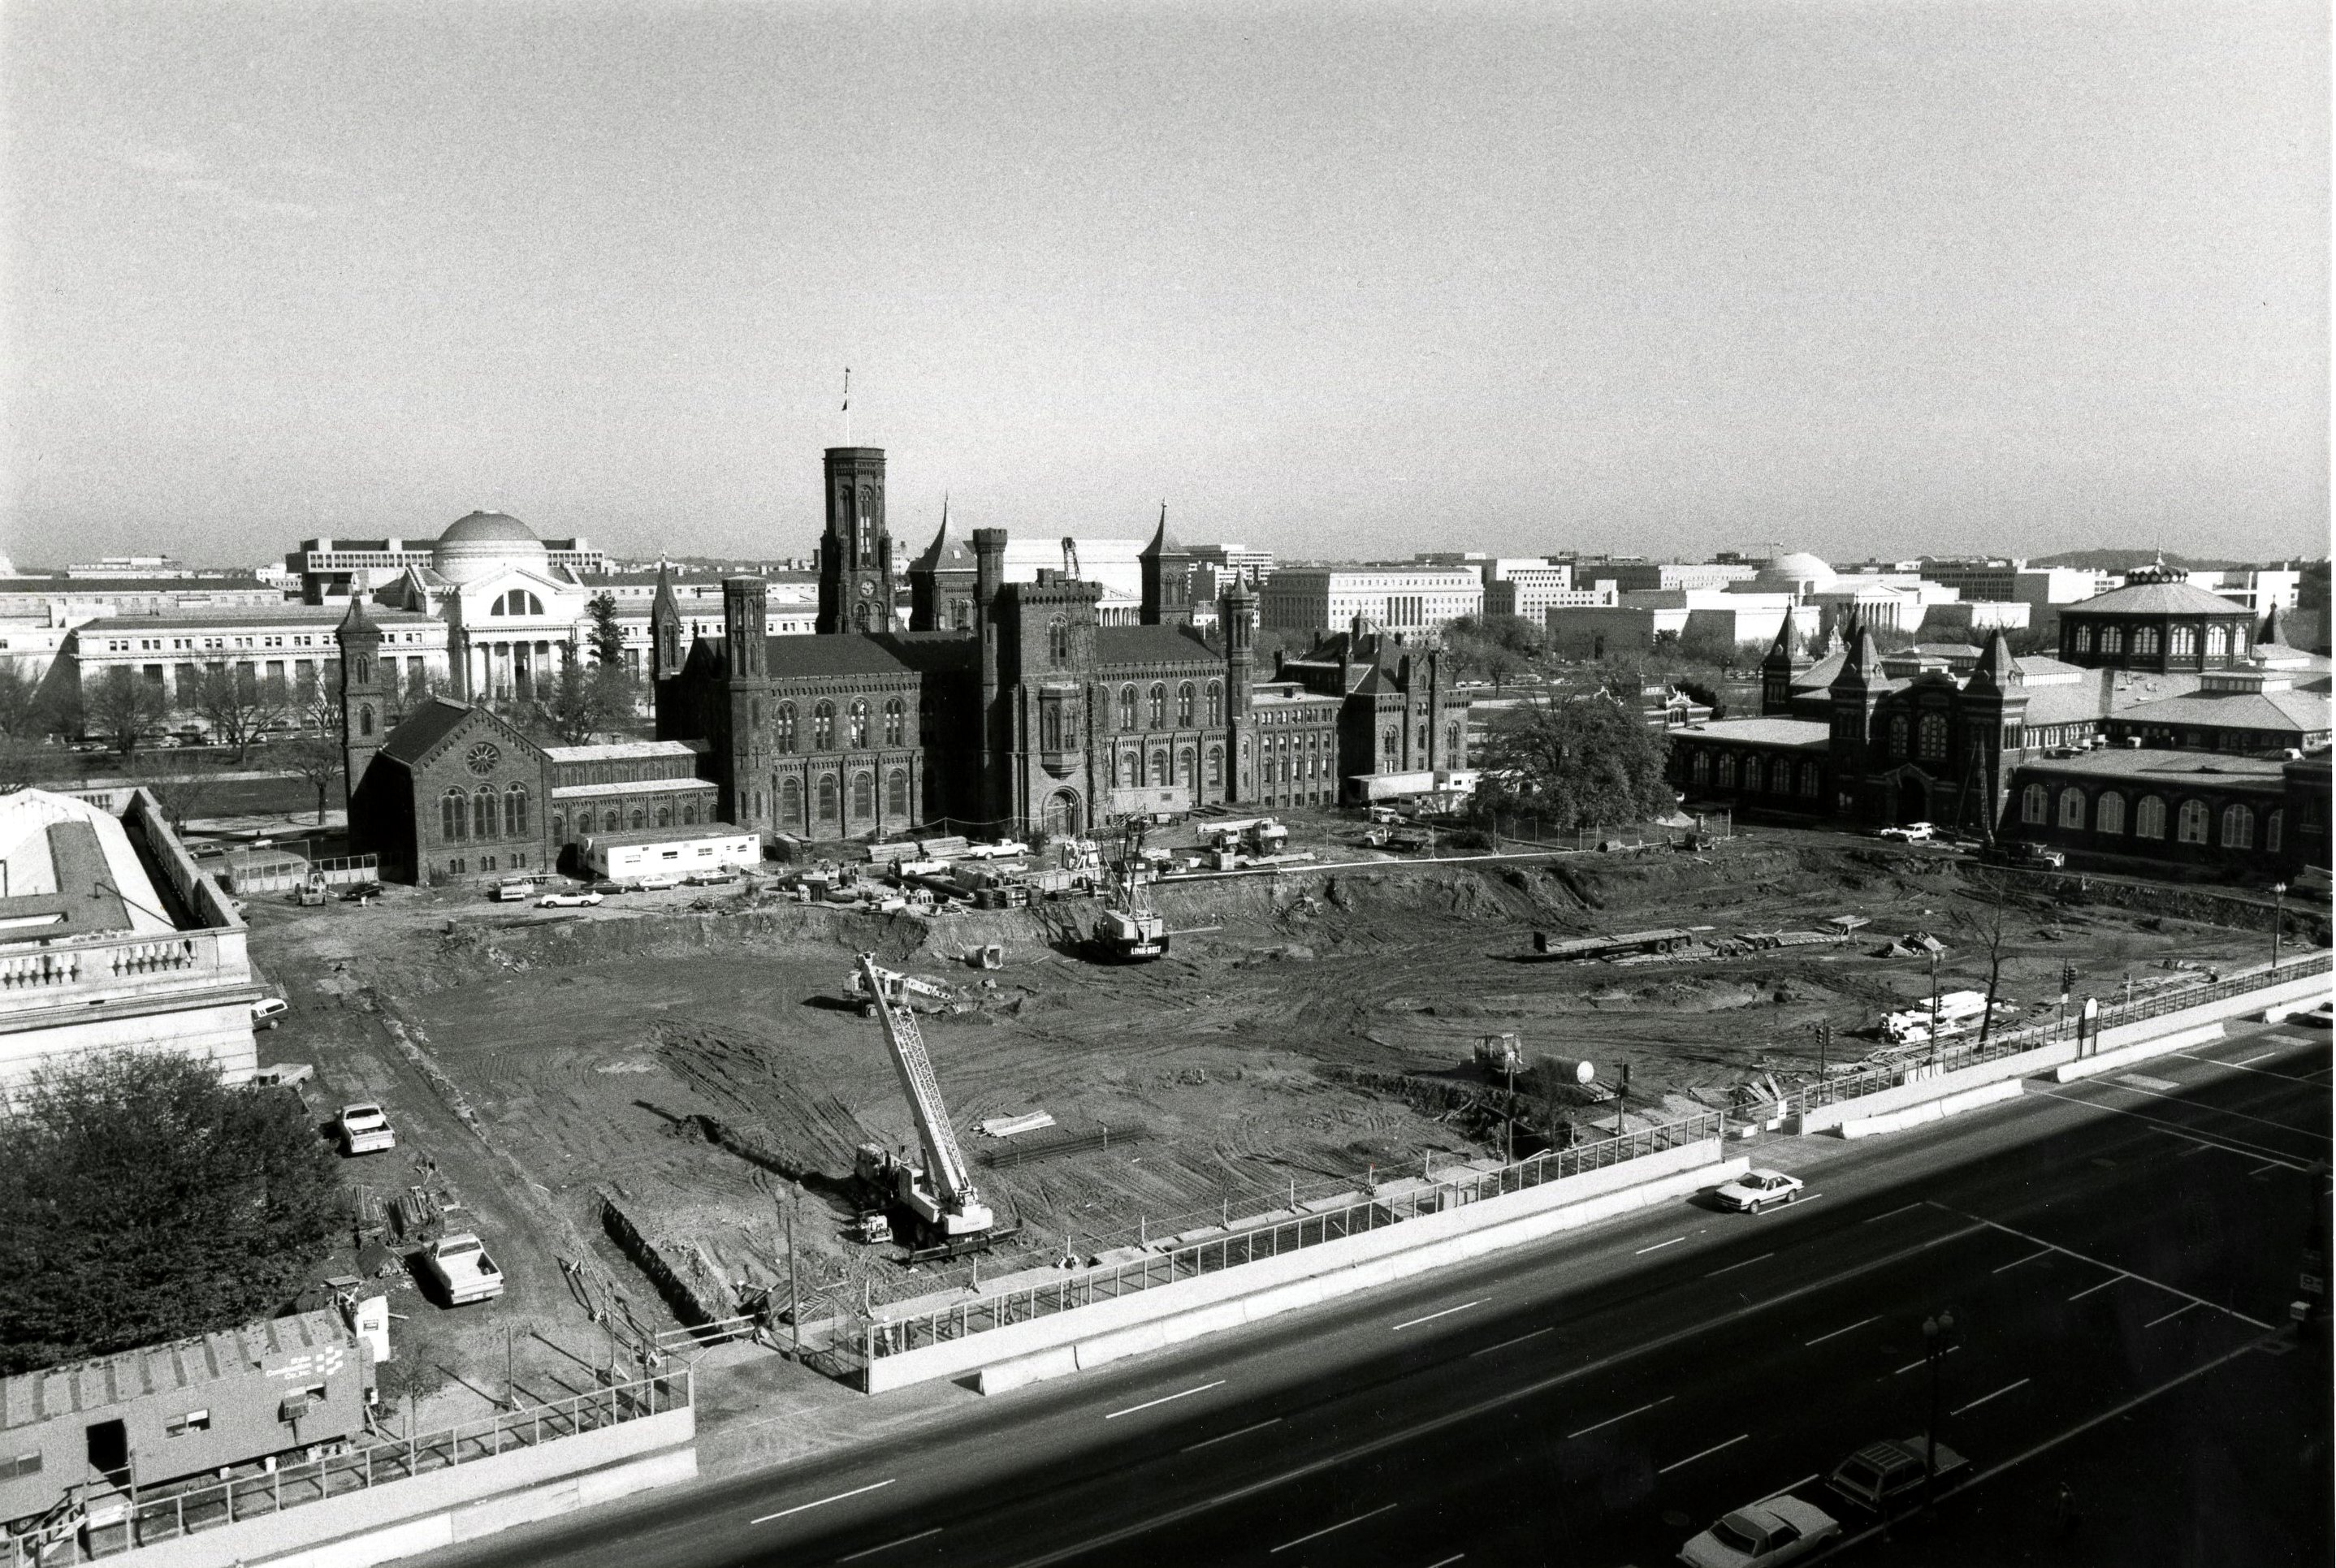 Quadrangle excavation, 1983, by Jeffrey Ploskonka.